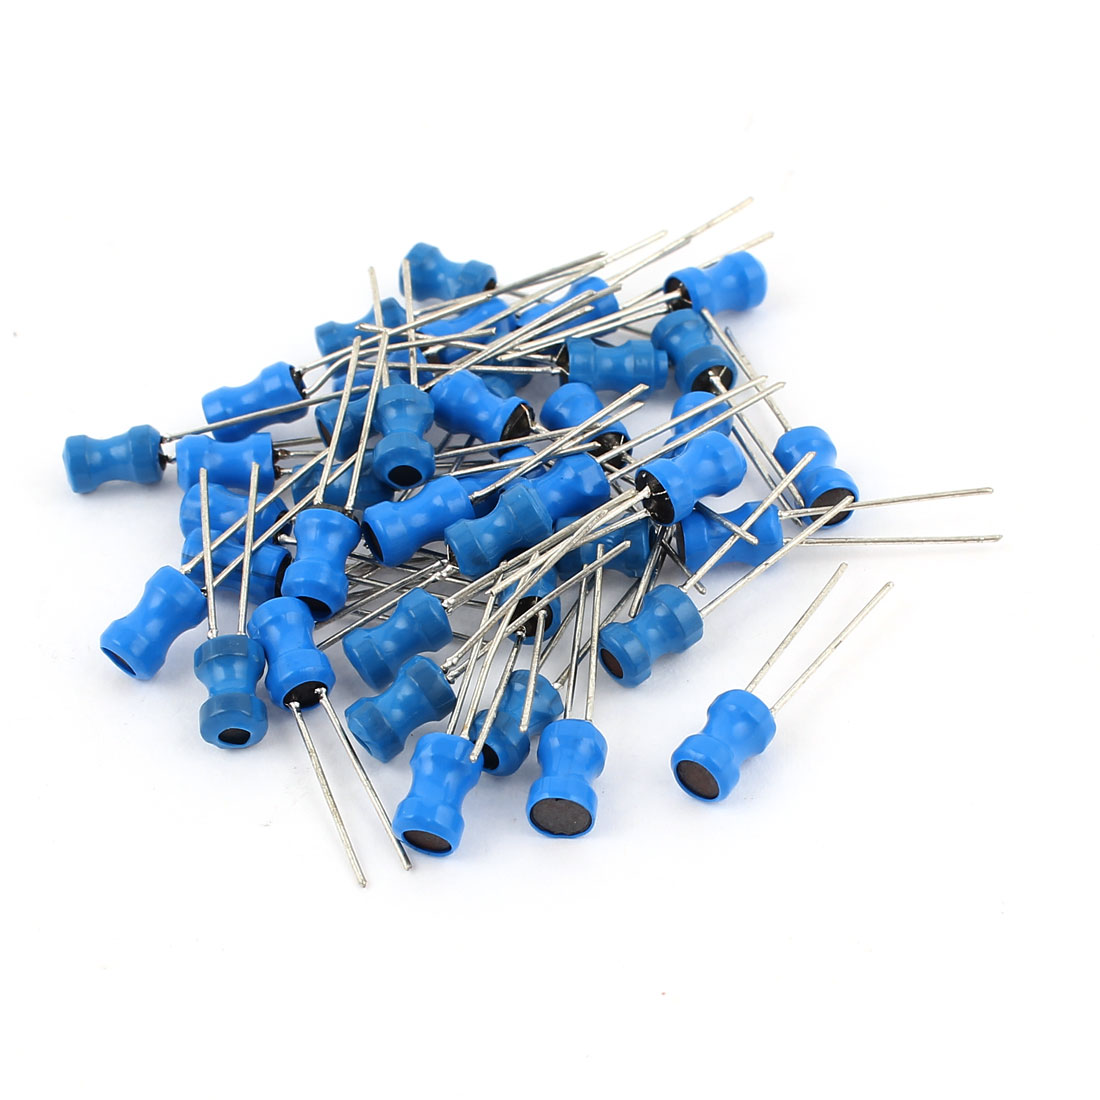 50Pcs 33uH 500mA 4x6mm 10% Tolerance Radial Lead Inductor Blue